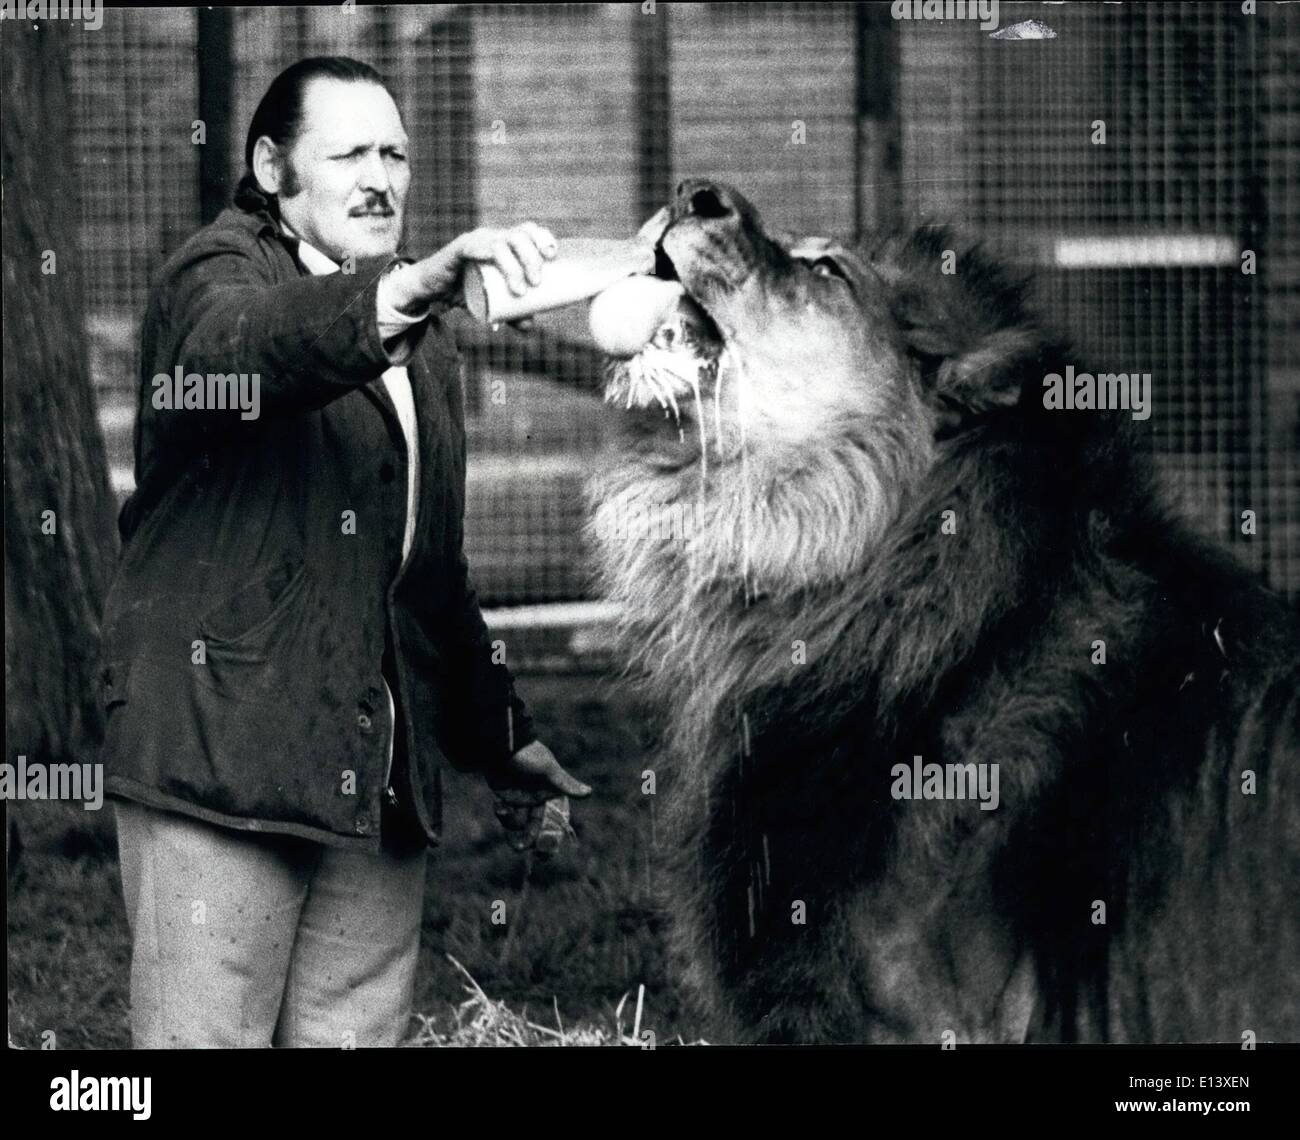 Mar. 27, 2012 - Simba, the world's largest lion, consumes 10 pints of milk besides his daily meat ration. TableStock Photo